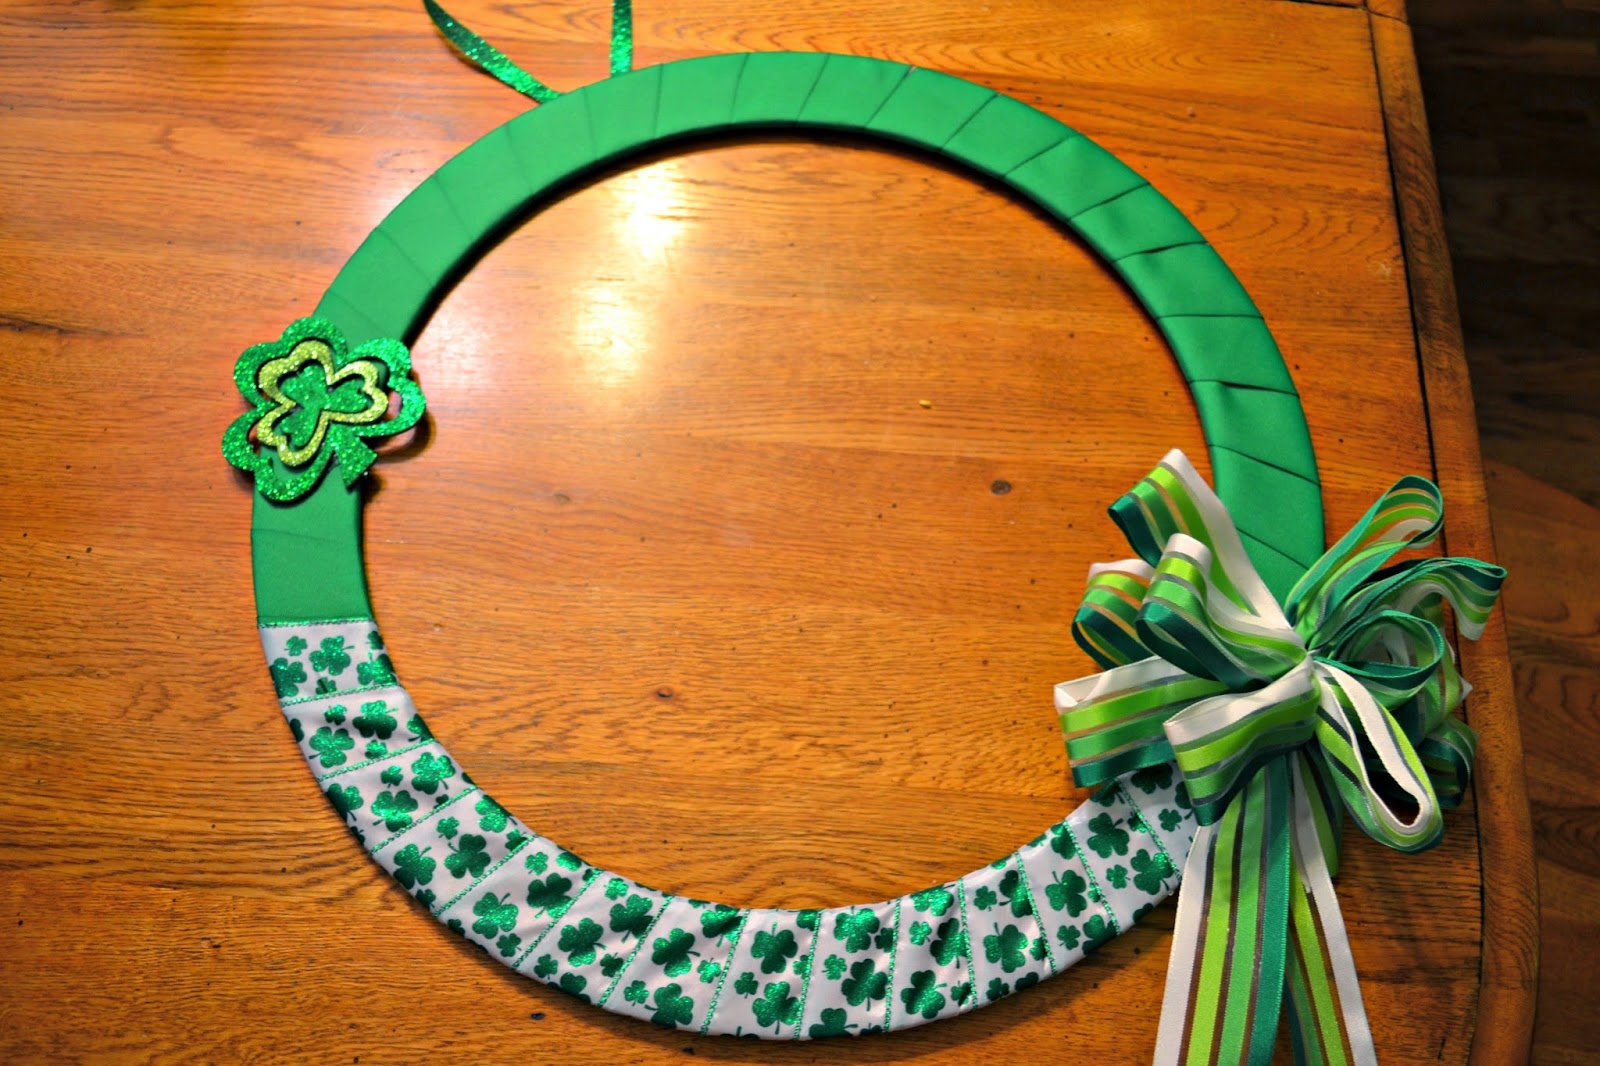 DIY St. Patrick's Day Door Wreath